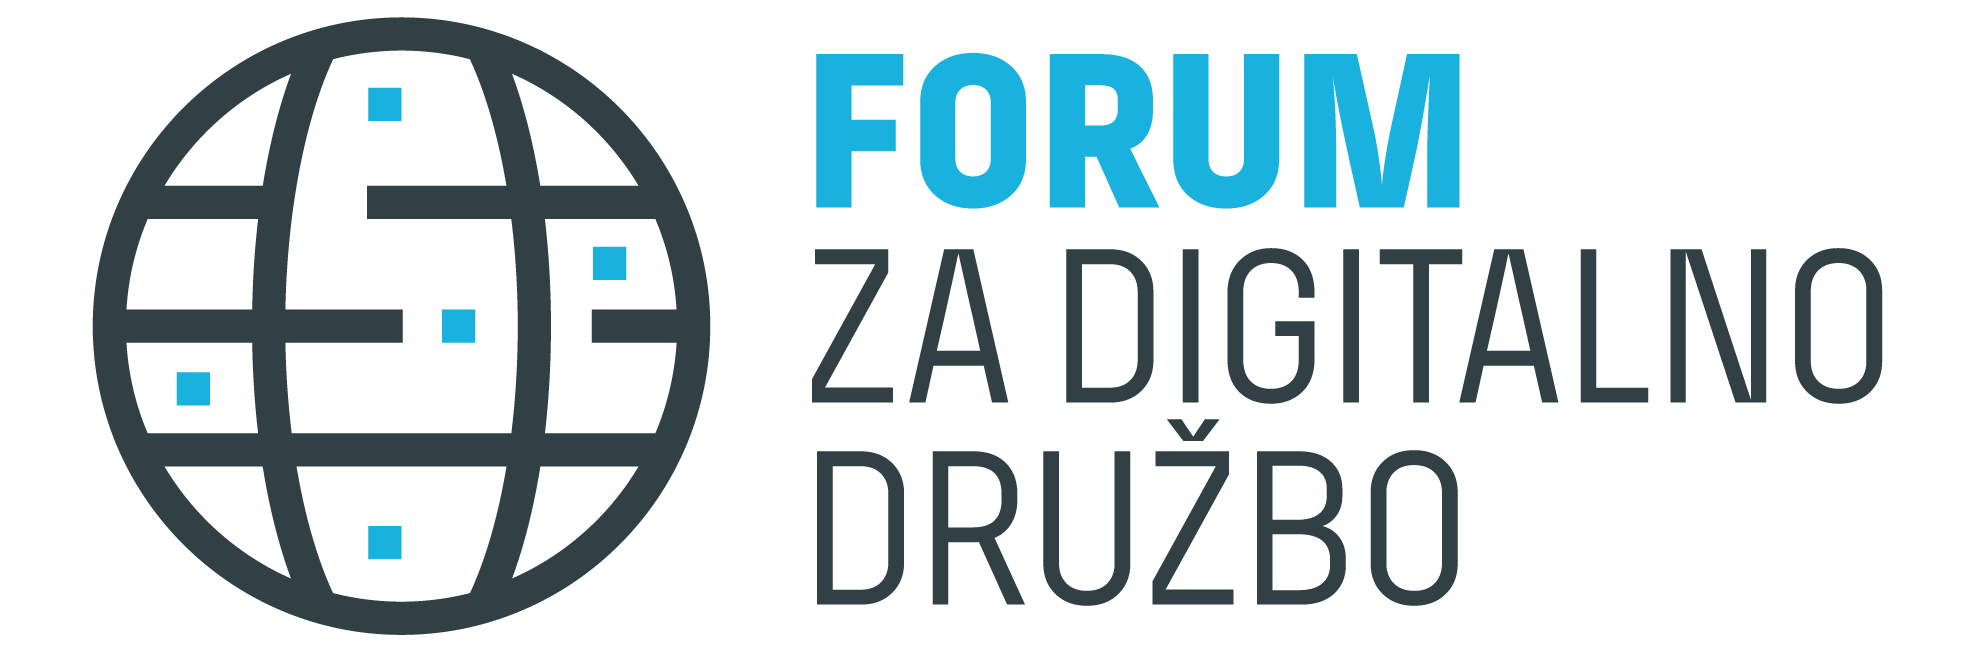 Forum za digitalno družbo